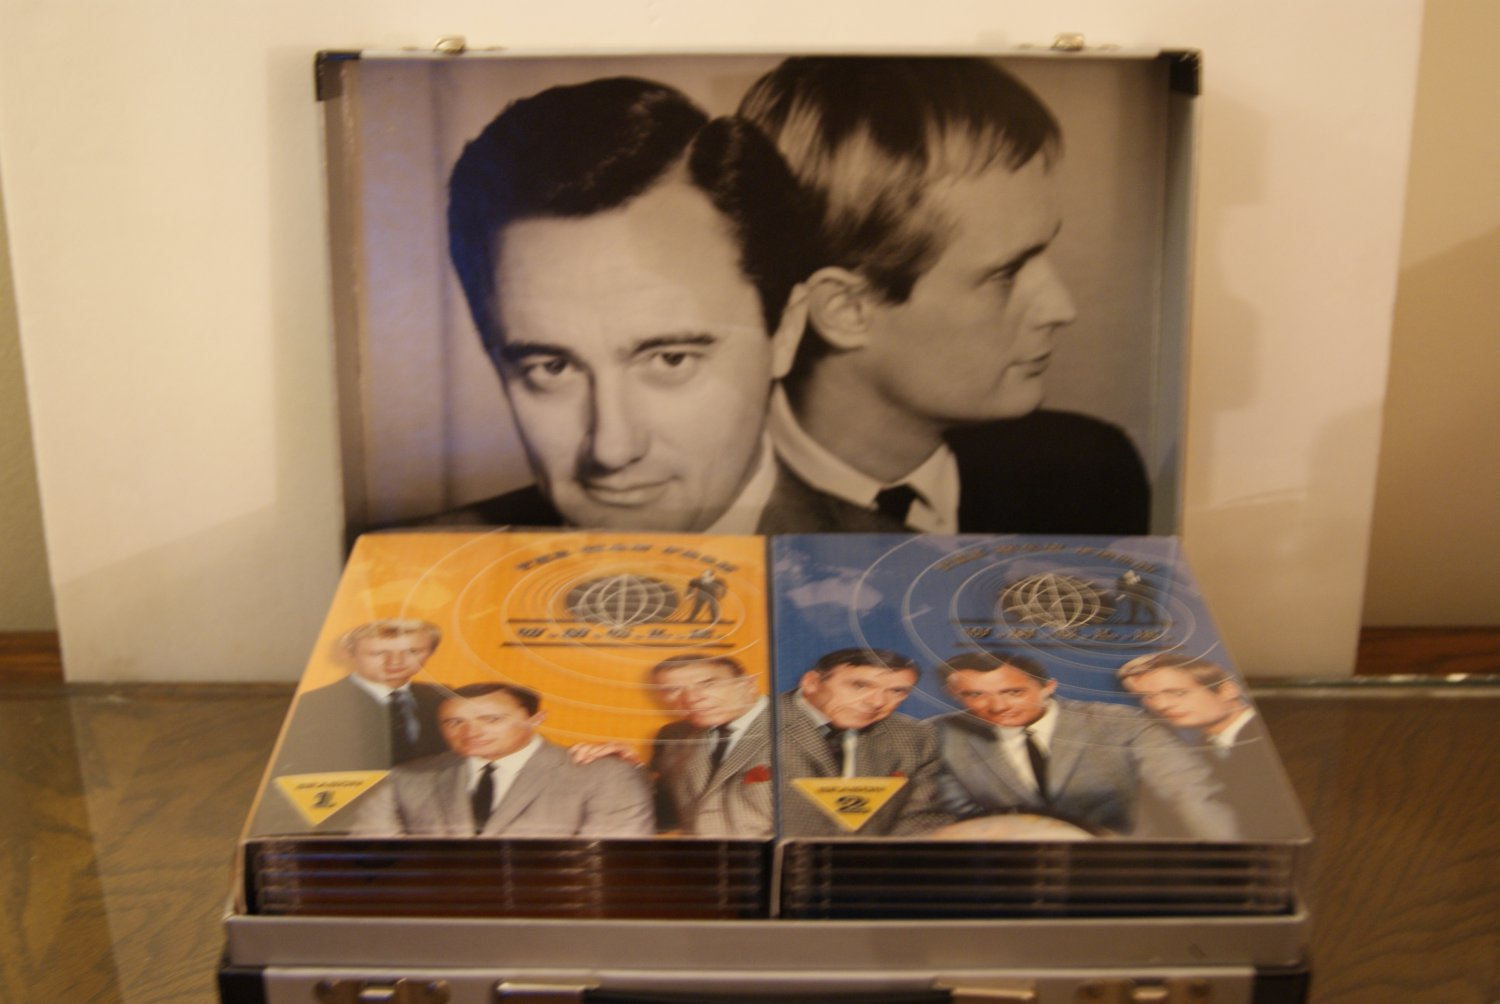 The Man from U.N.C.L.E. complete DVD set